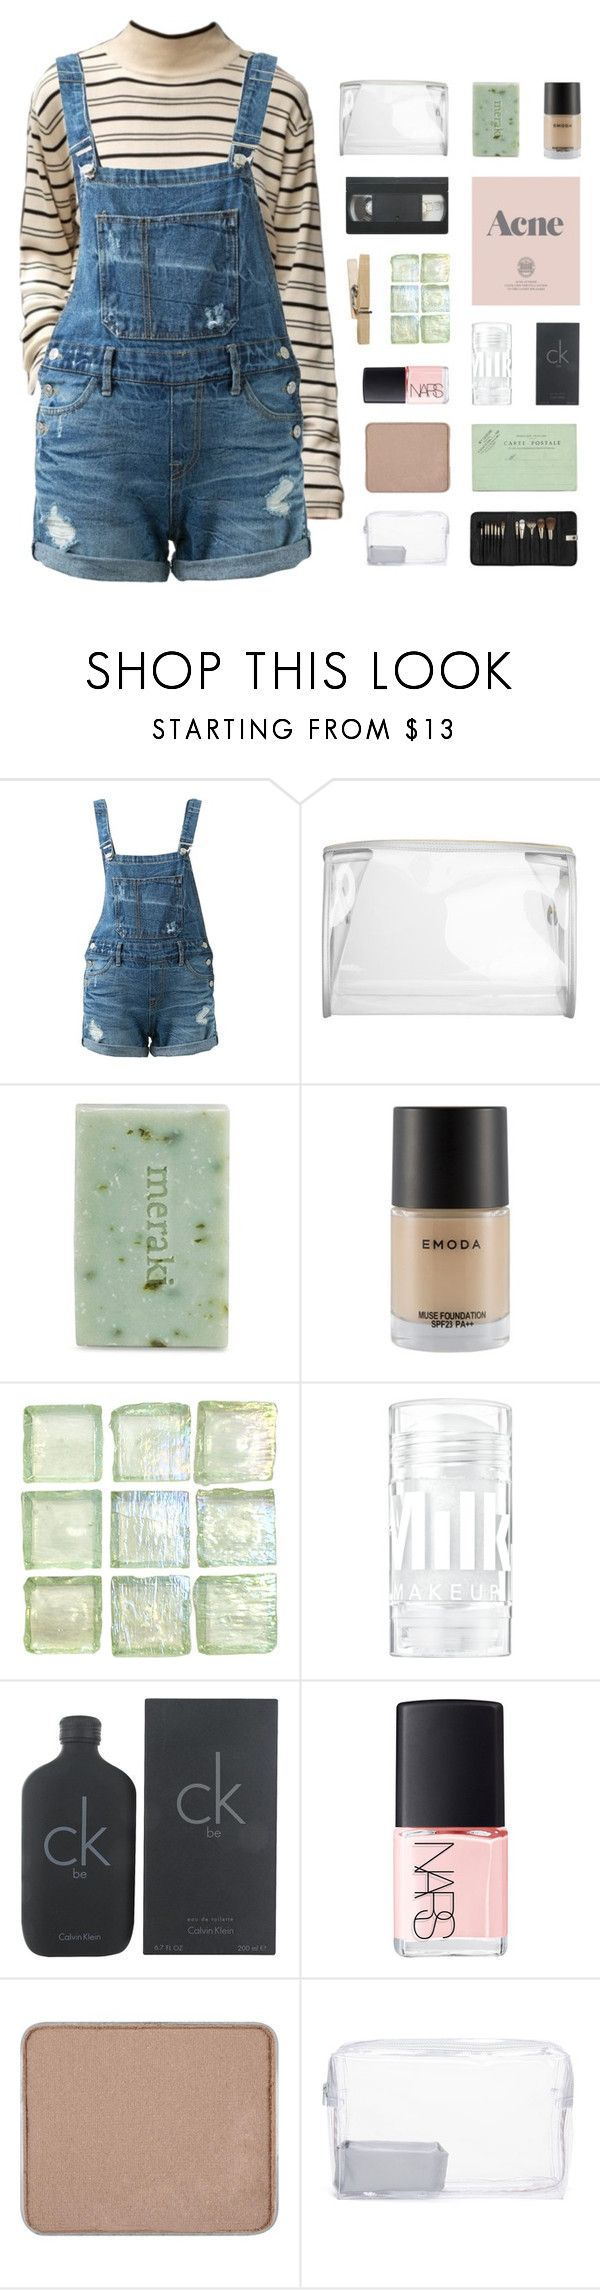 """""""- i might get to too much talking, i might have to tell you something"""" by p-ureness ❤ liked on Polyvore featuring Guild Prime, Meraki, Prada, Calvin Klein, NARS Cosmetics, shu uemura, Topshop and Sephora Collection"""